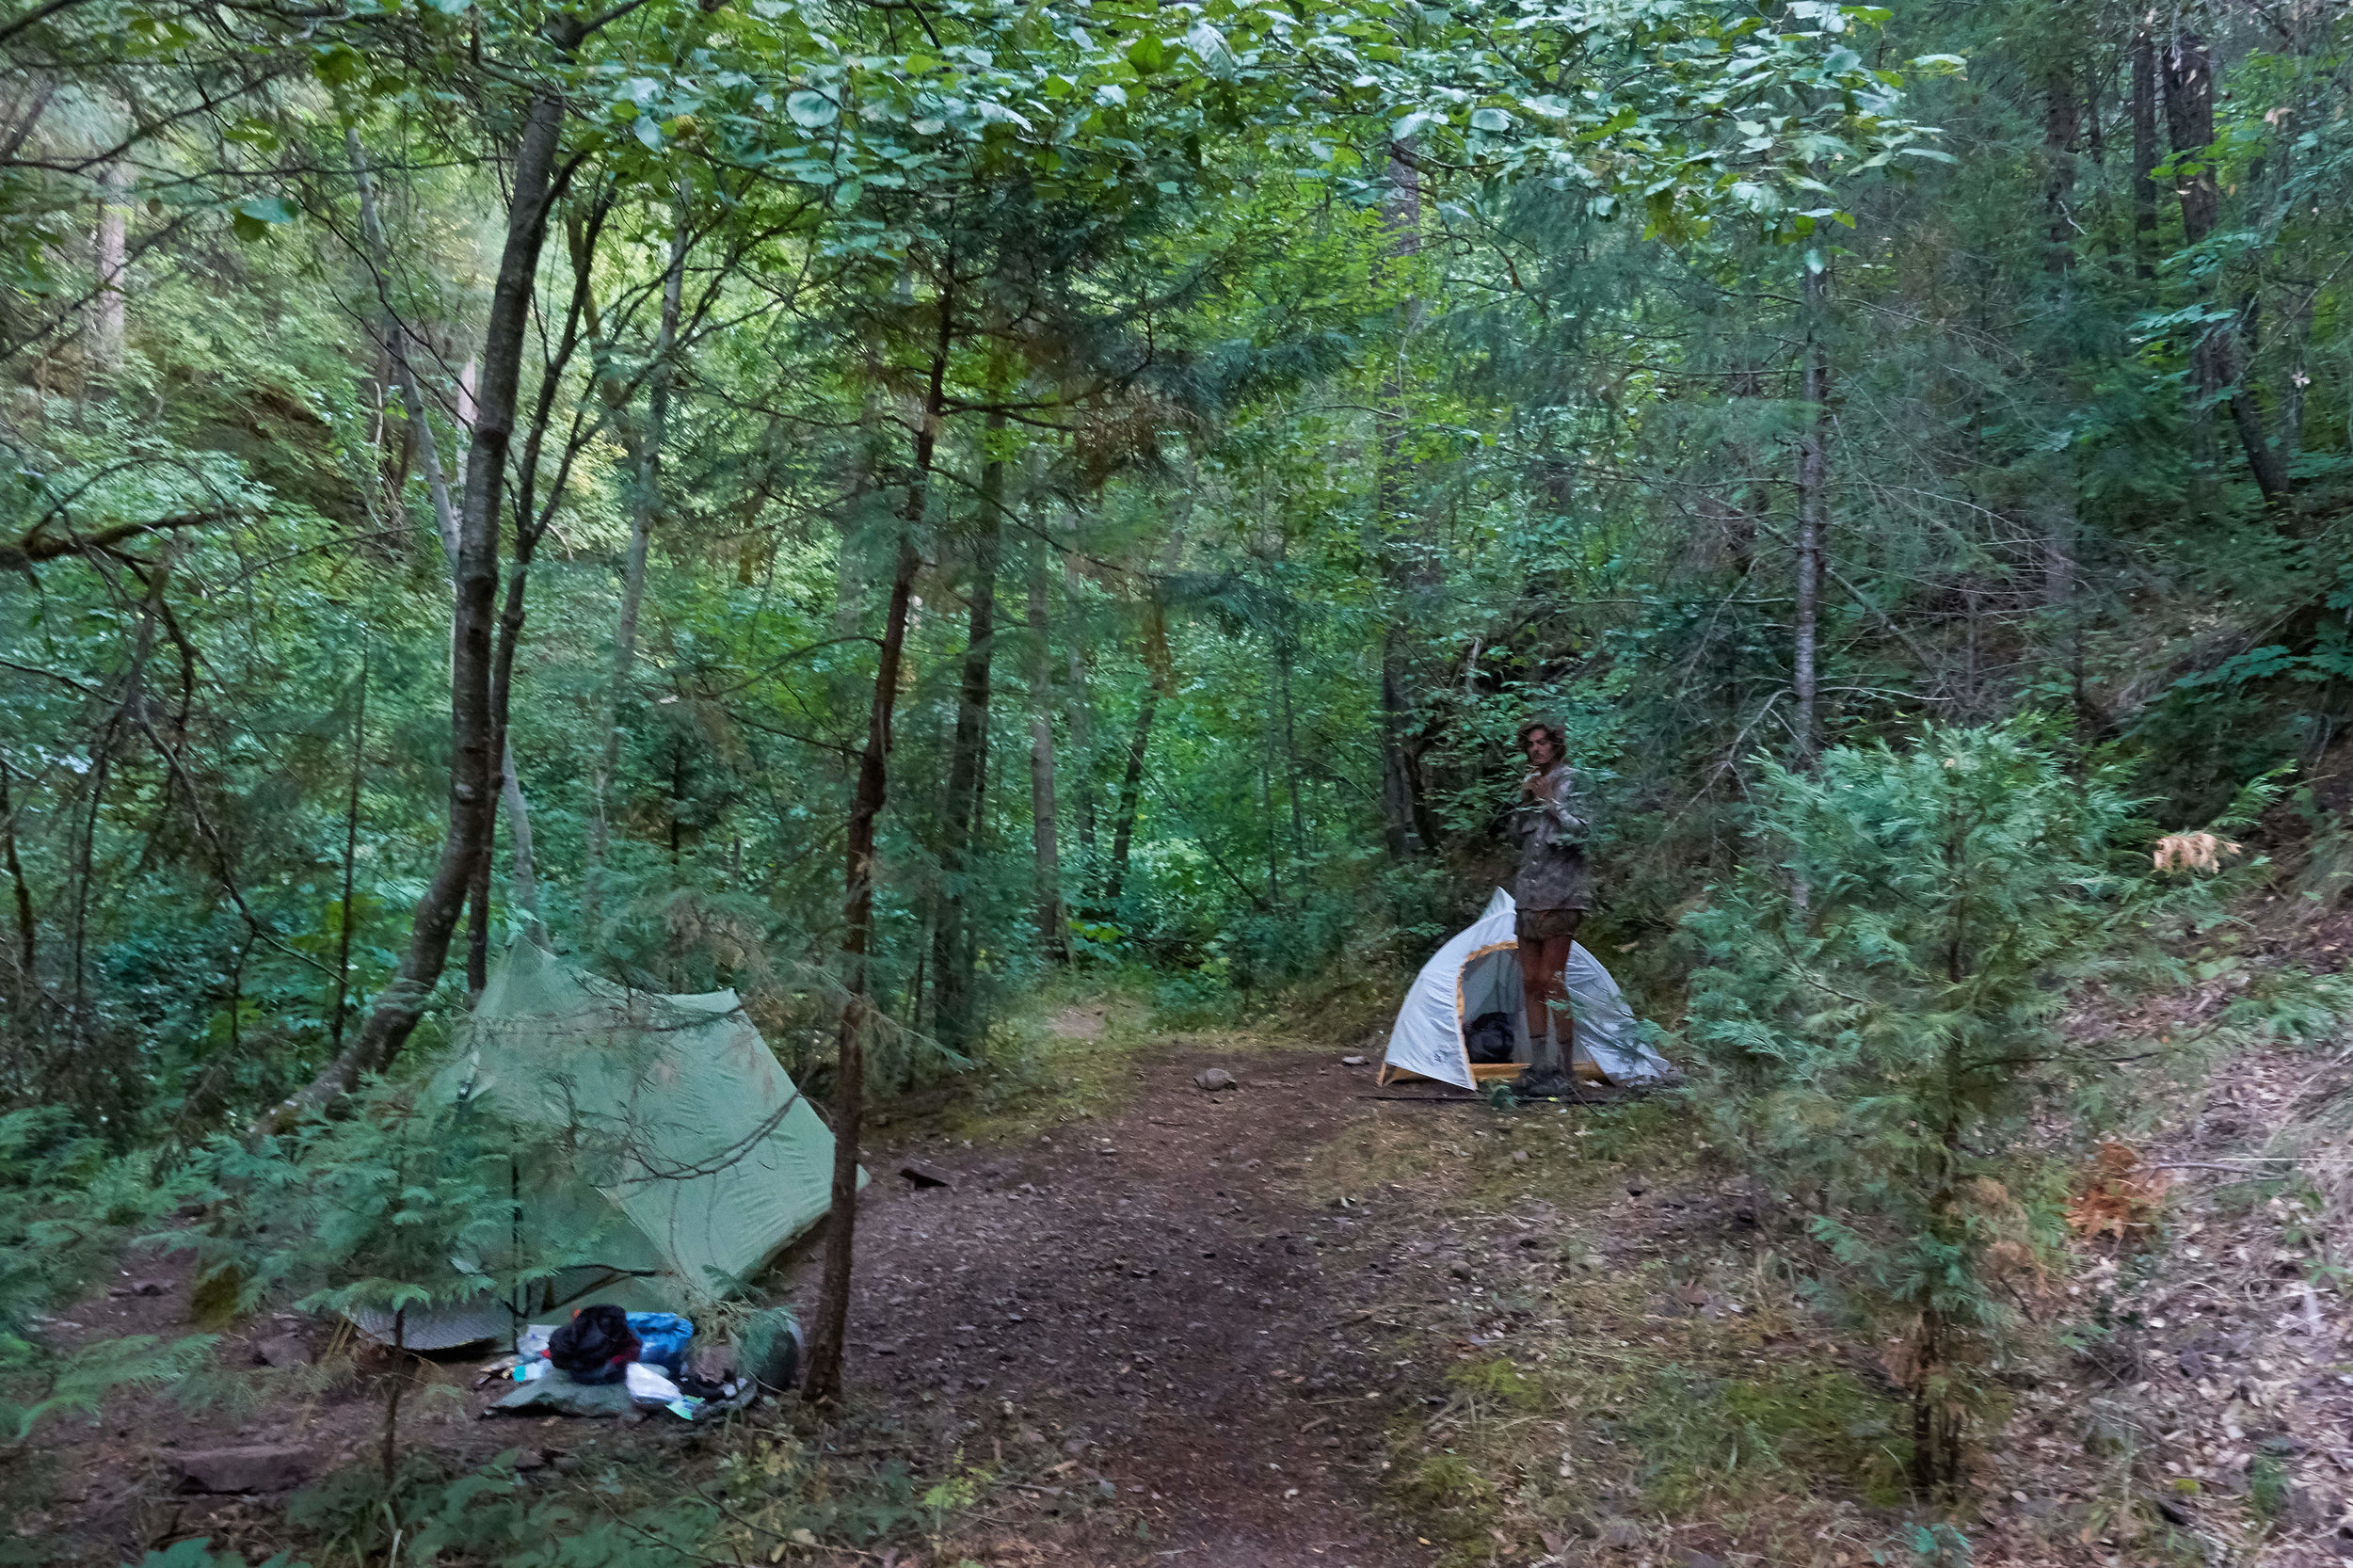 You're supposed to camp at least 200 feet (60m) from the trail but sometimes it's not possible.